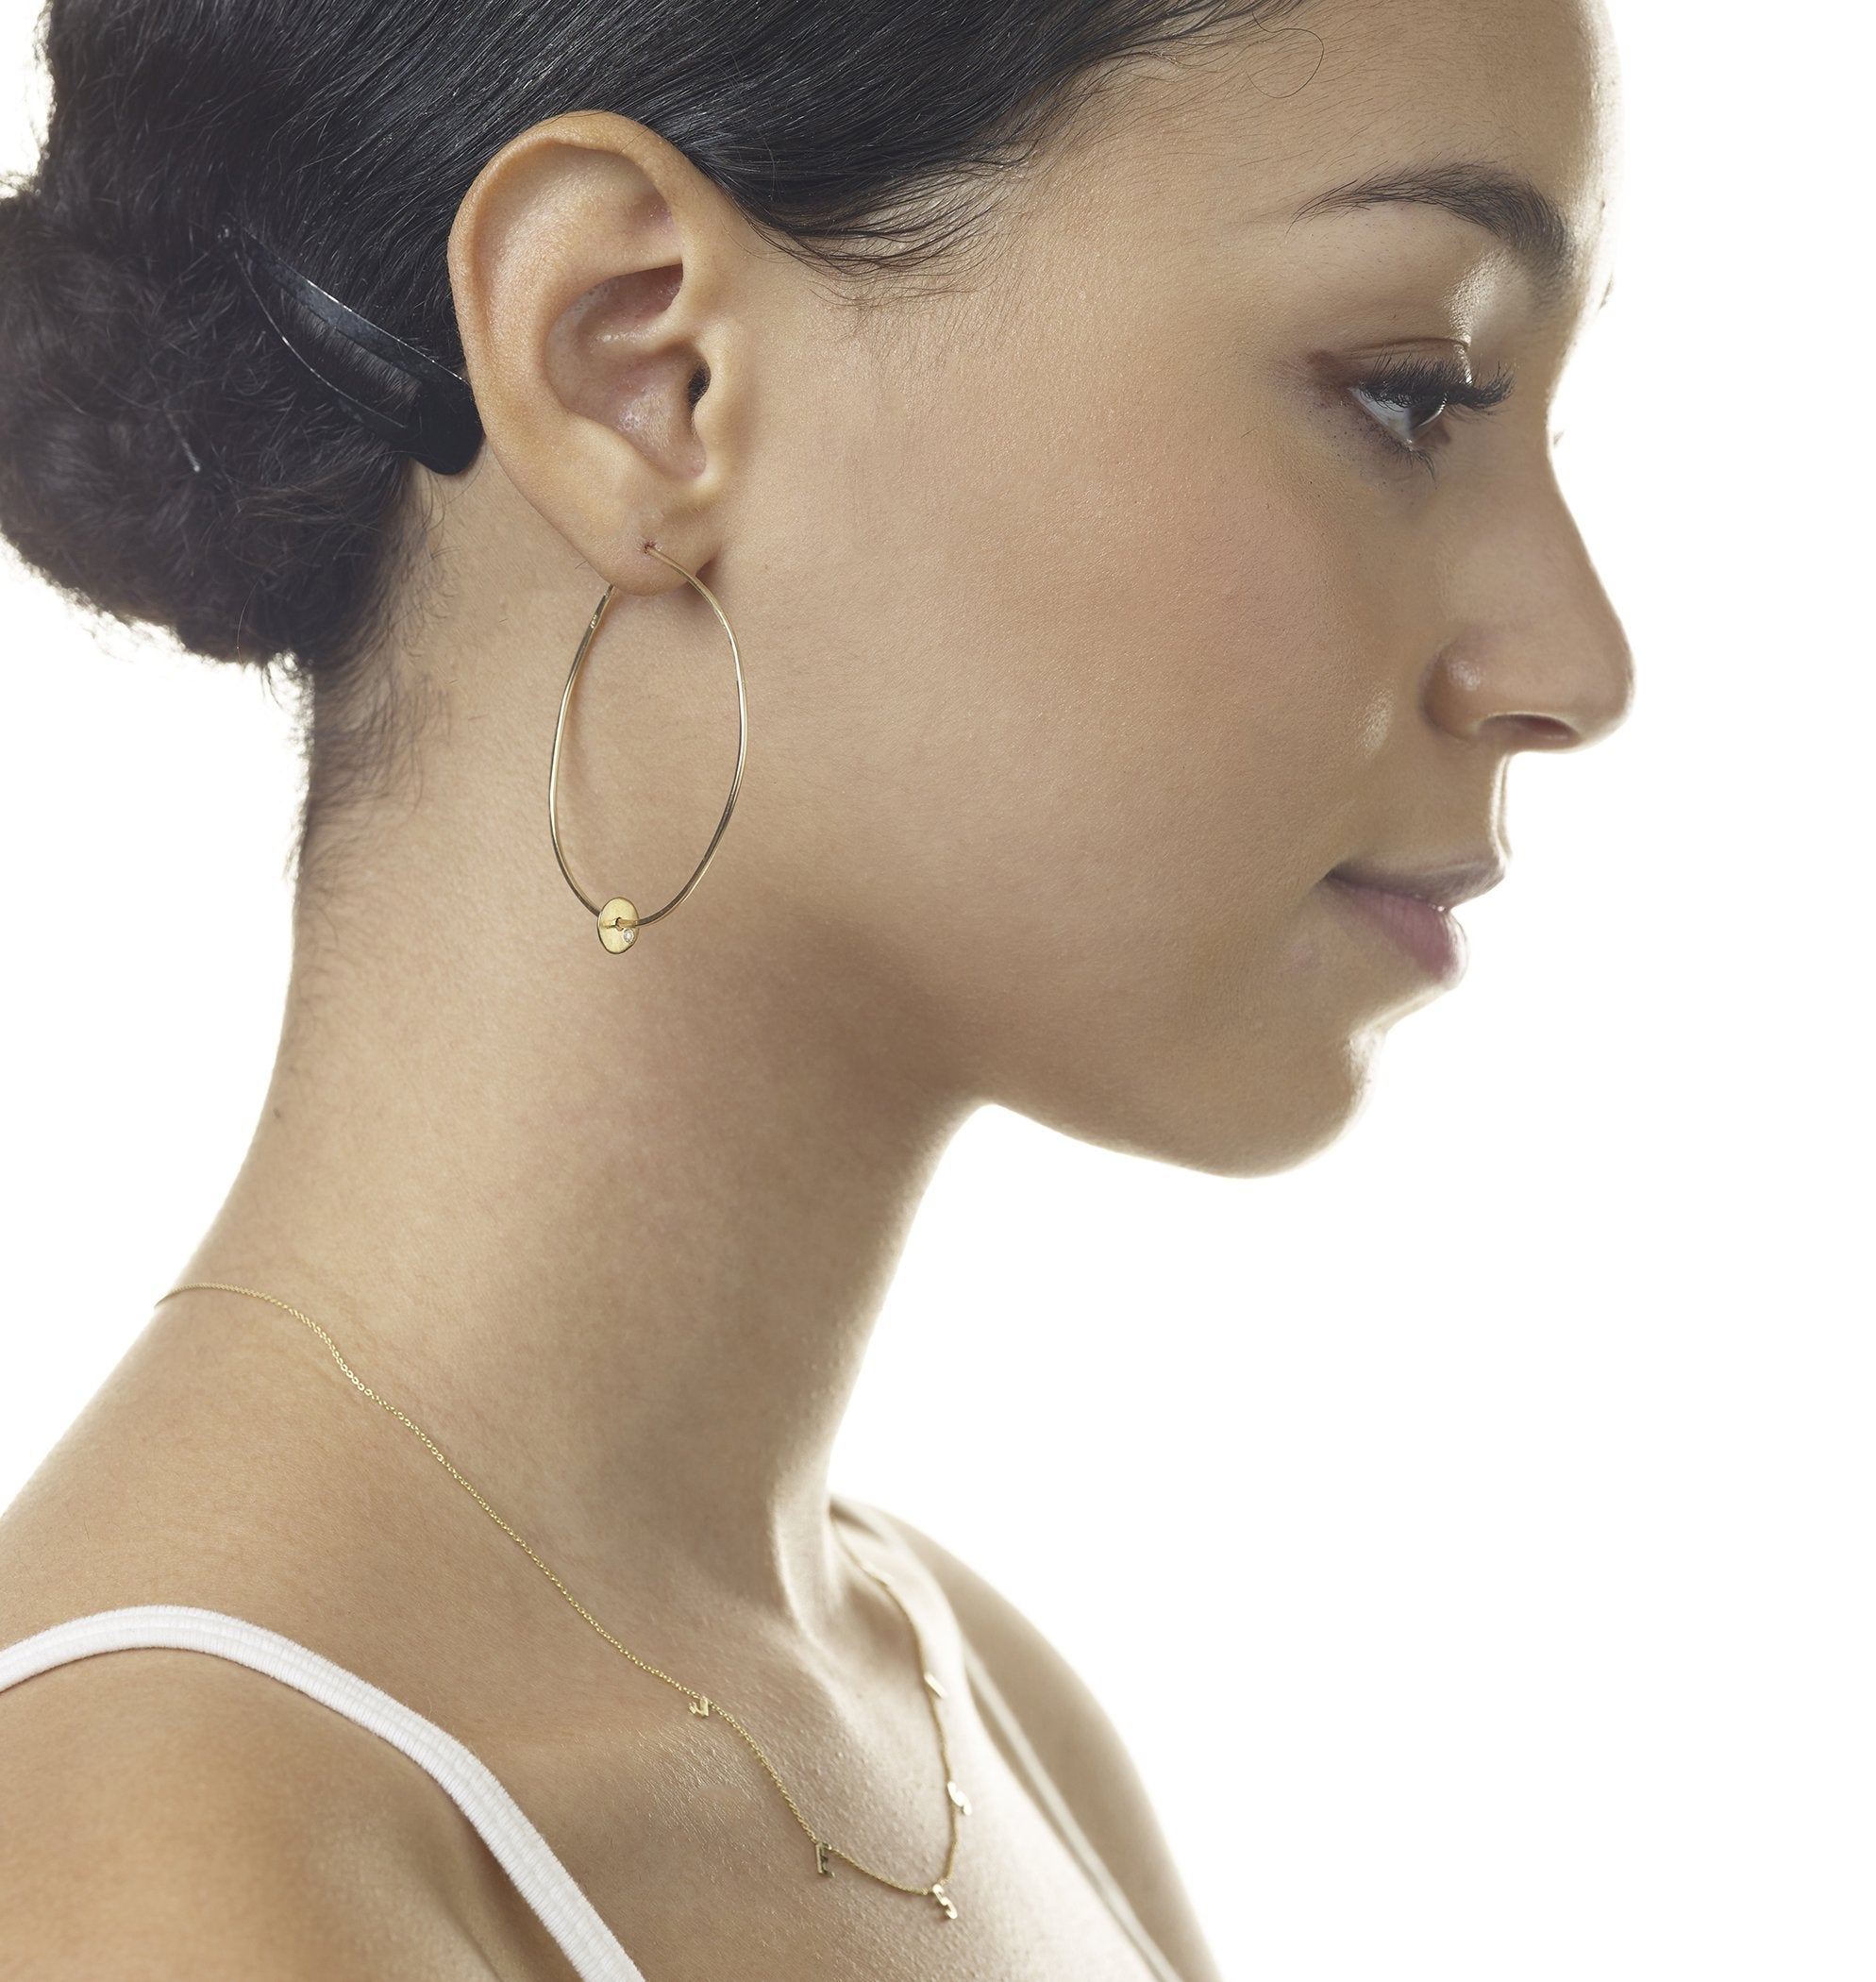 Large Hoop Earrings With Diamond Disk - Yellow Gold - Helen Ficalora Jewelry